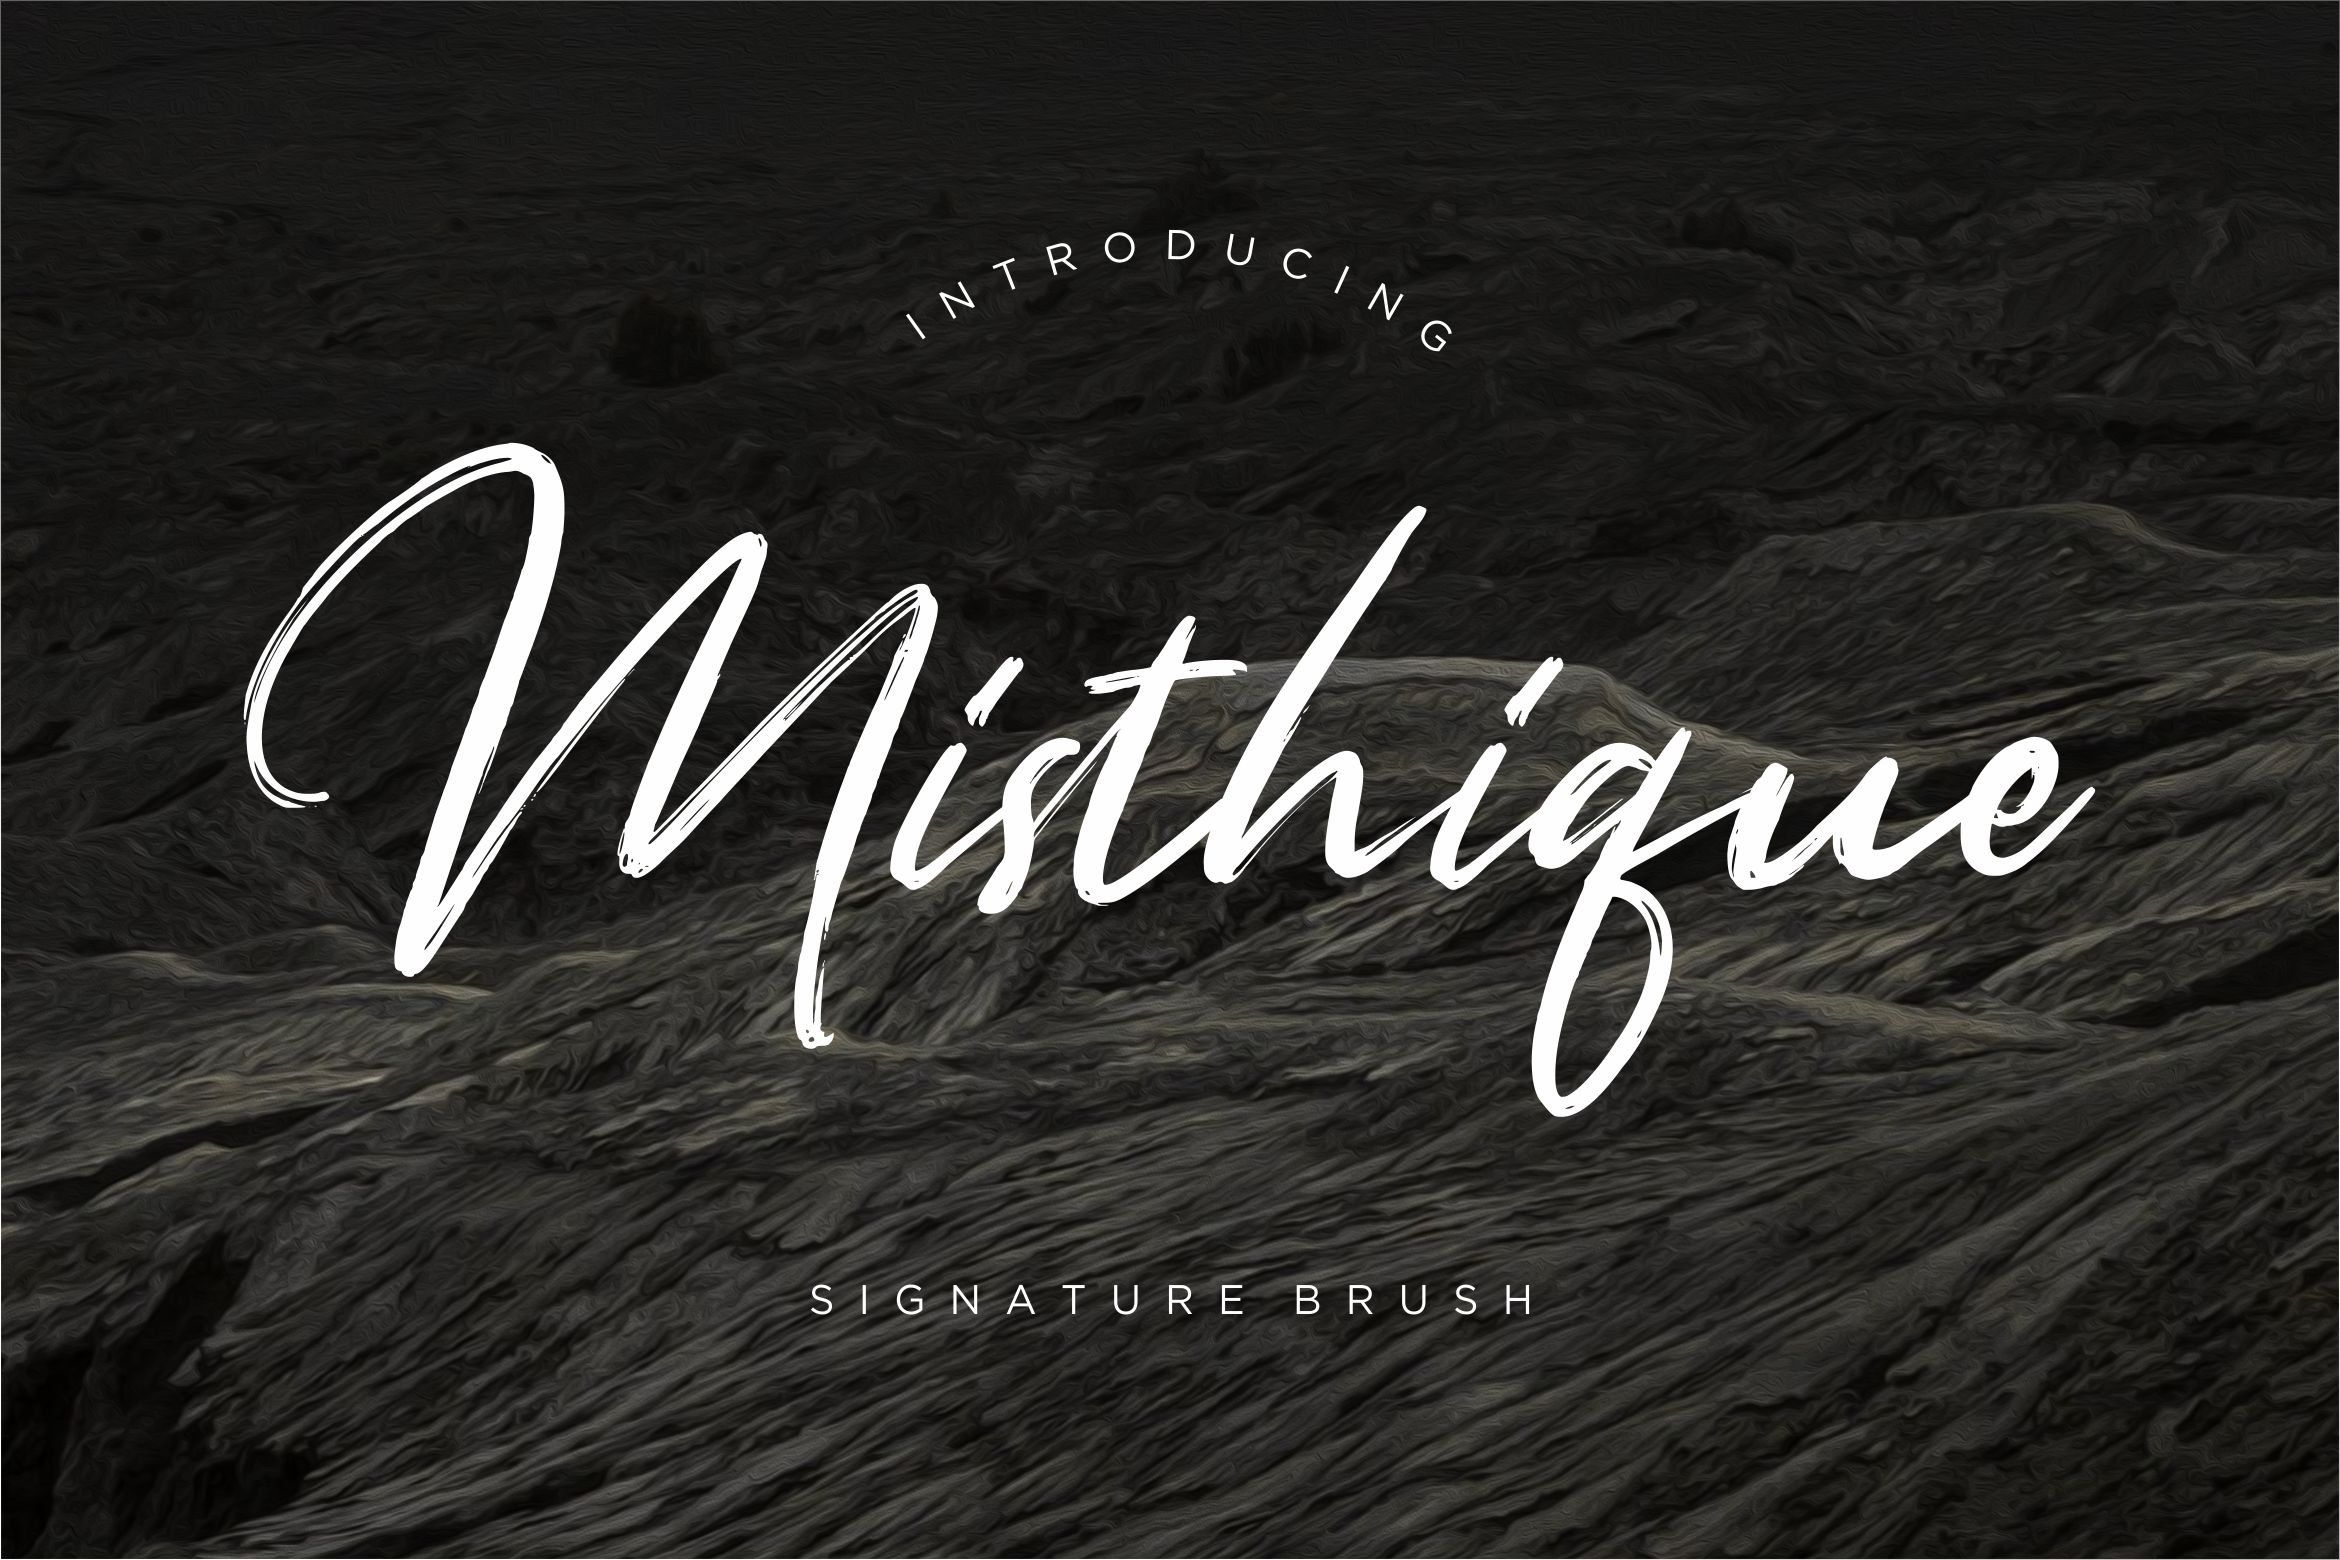 **Misthique** is a signature brush font with rough and